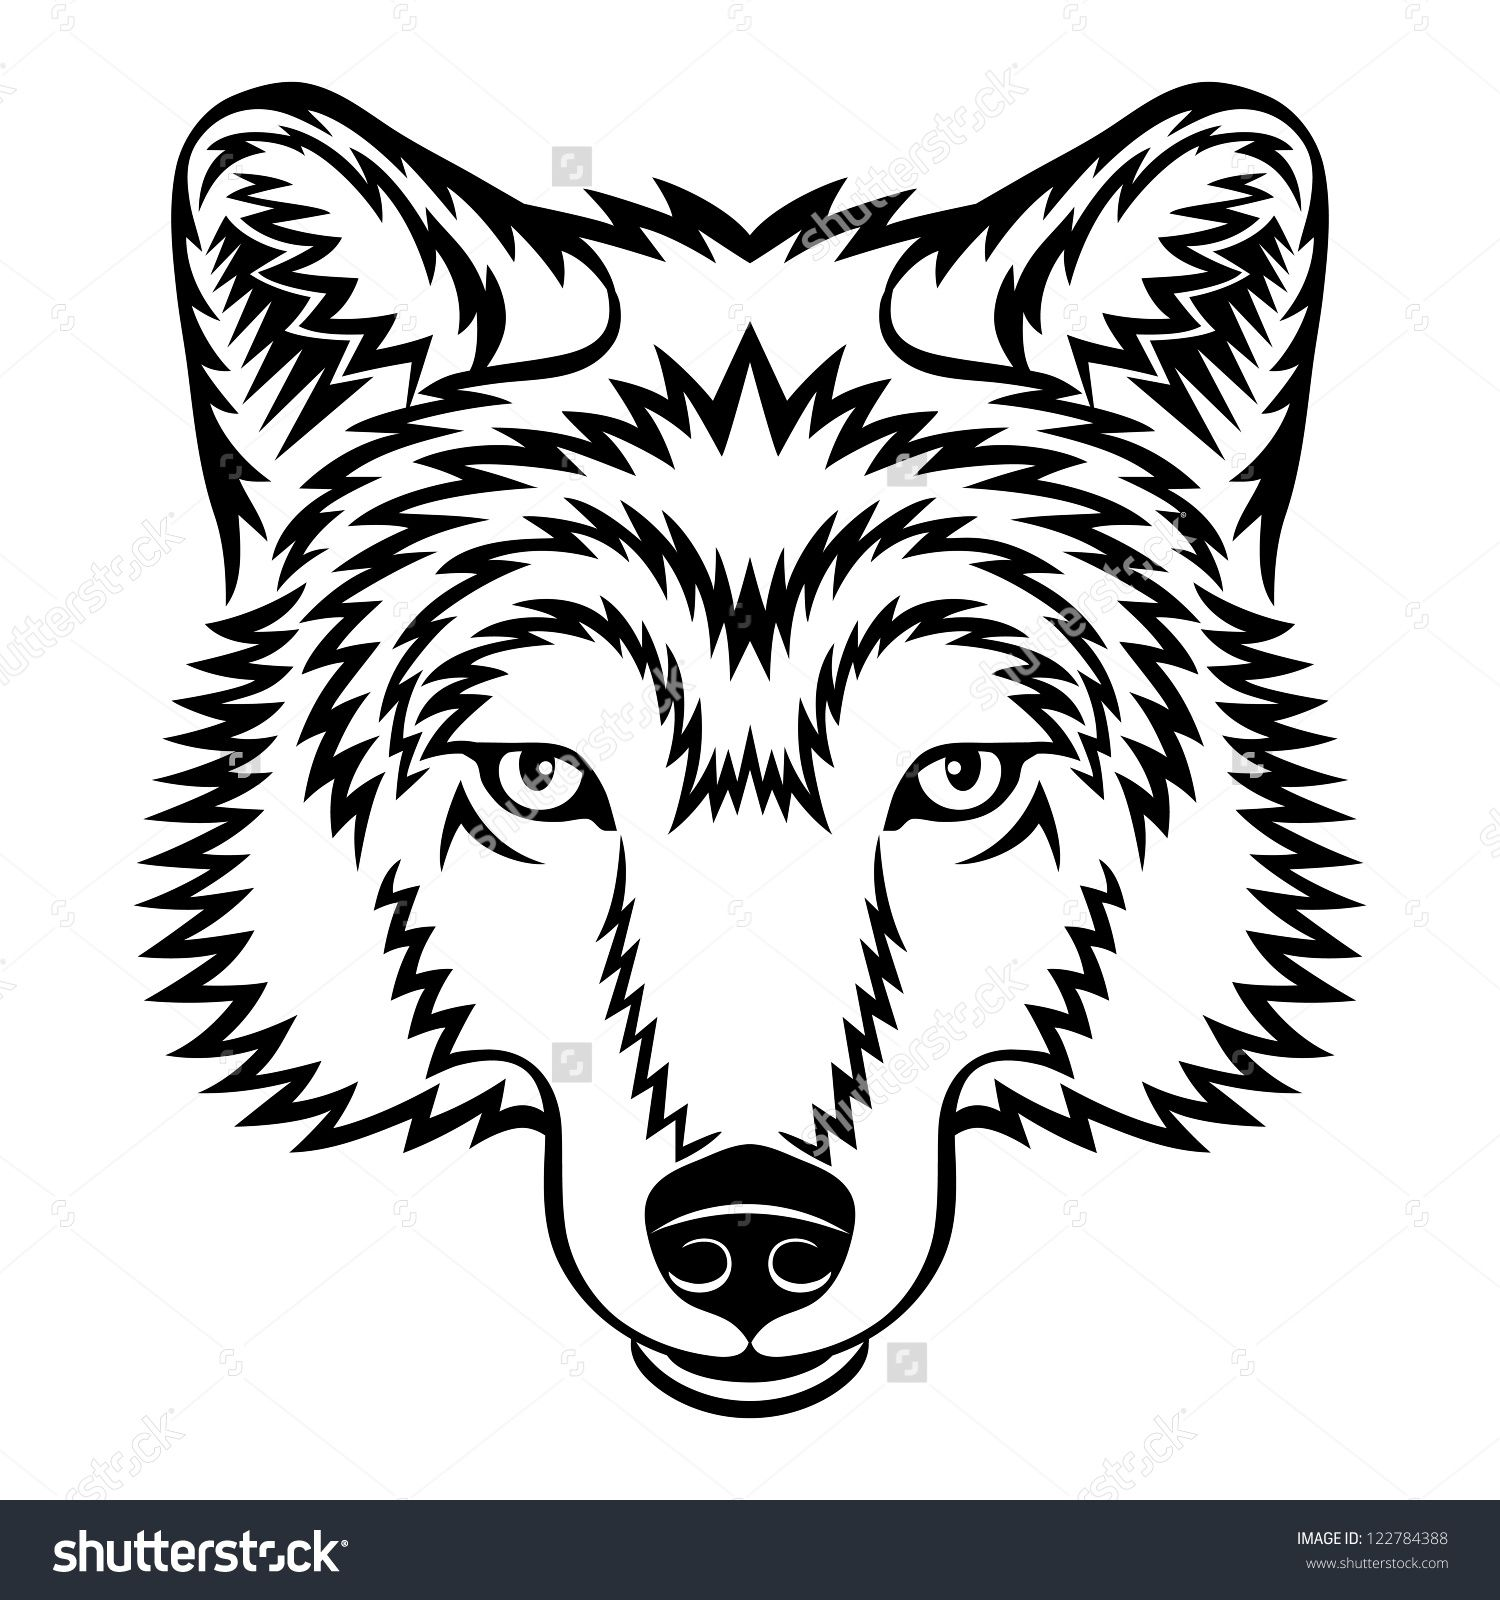 1500x1600 Stock Vector A Wolf Head Logo In Black And White This Is Vector